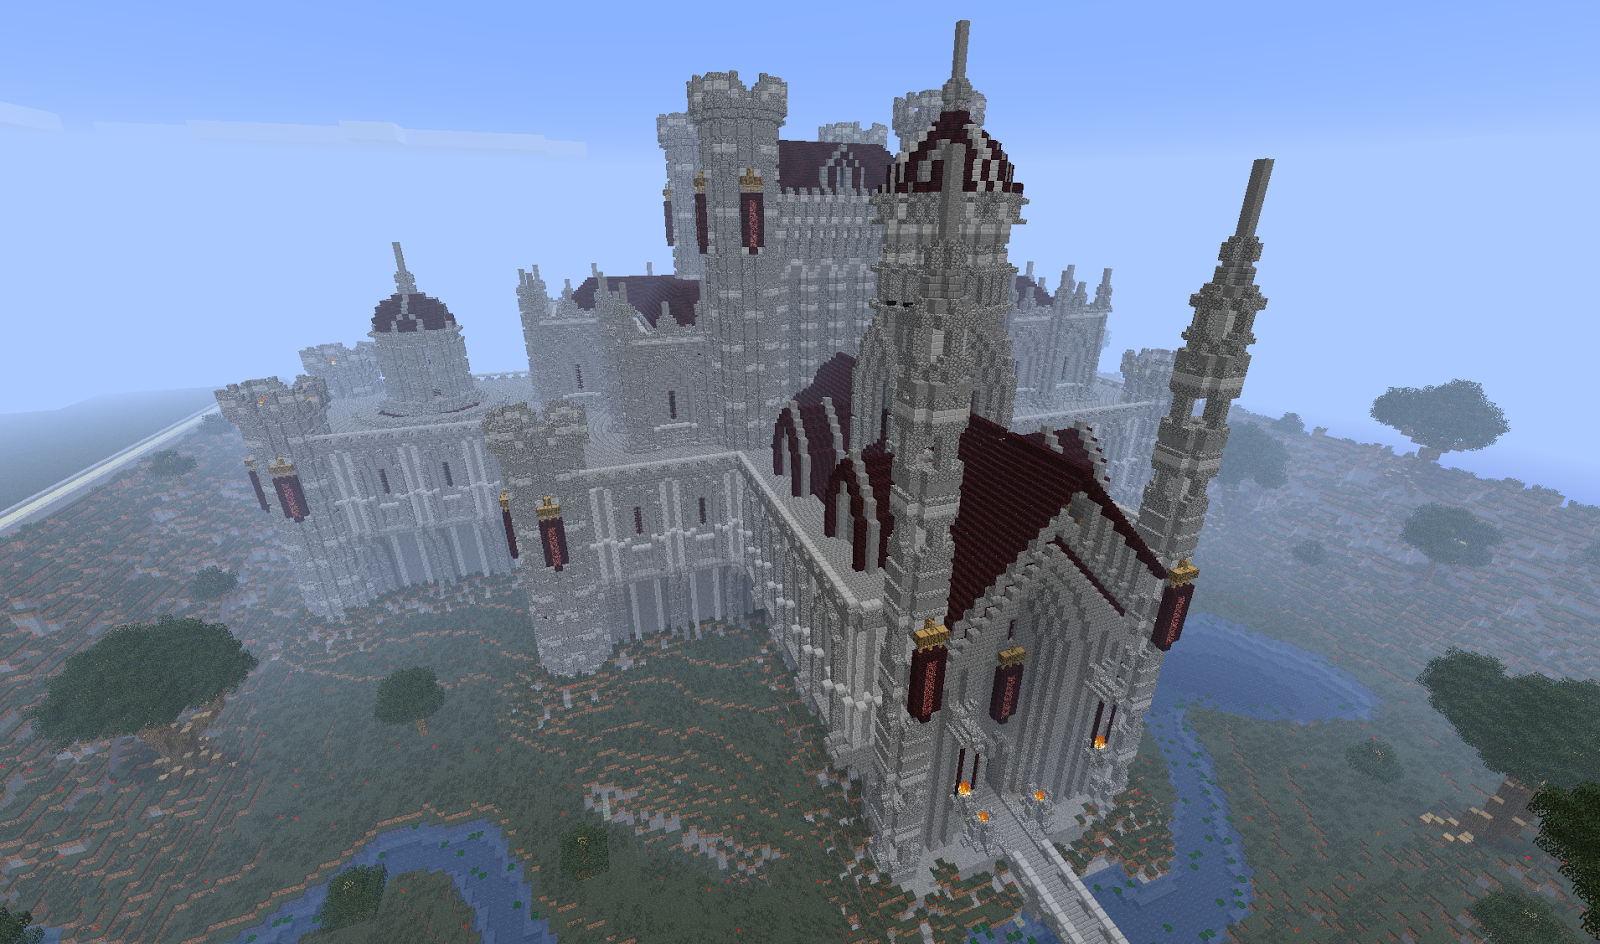 Ten Epic Minecraft Castles For Inspiration | Minecraft ...